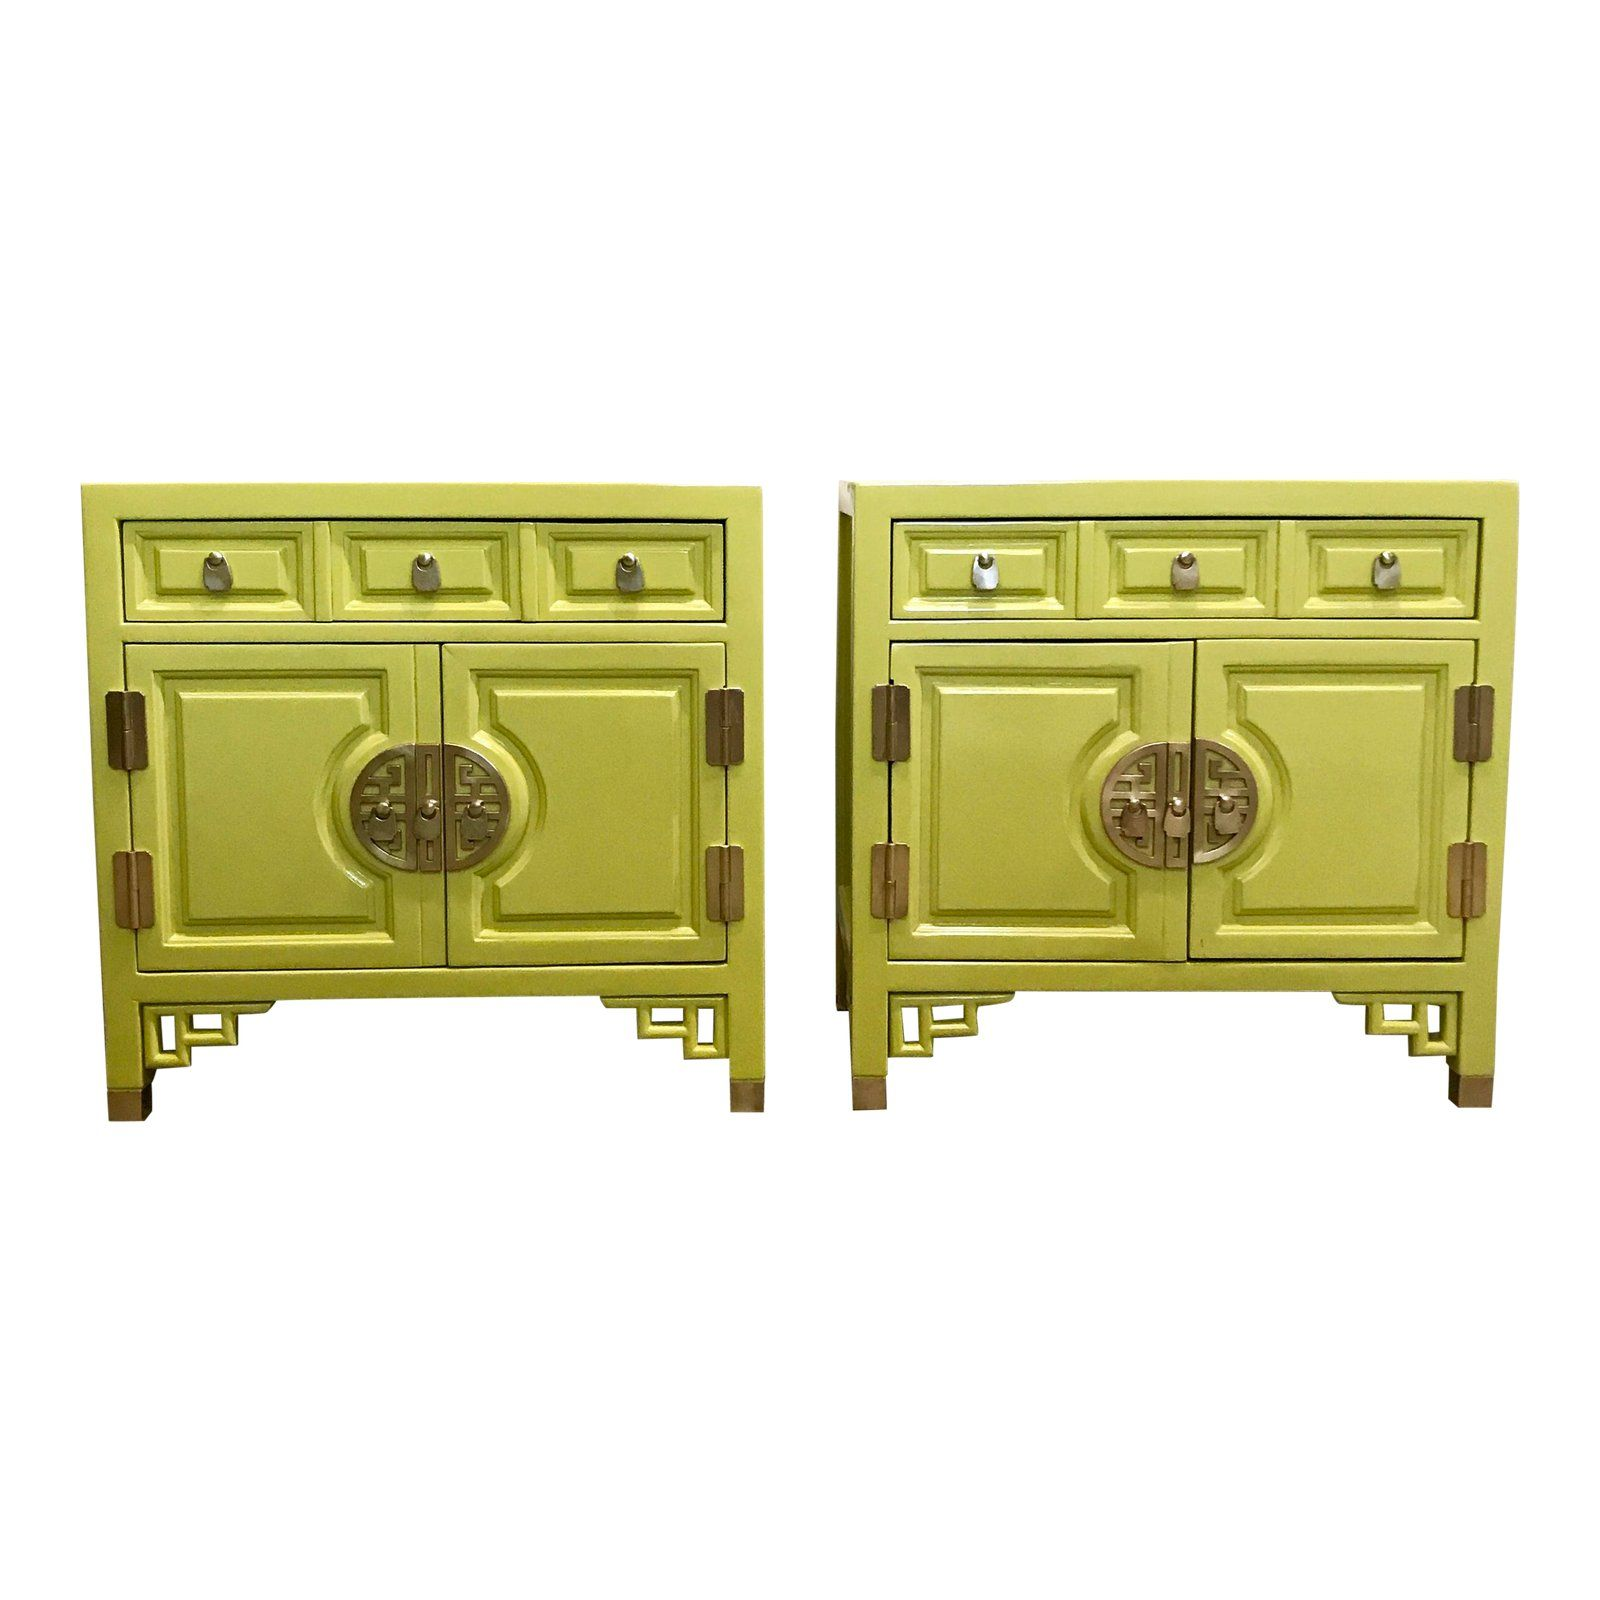 A Gorgeous Pair Of Vintage Asian Style Nightstands By Century Furniture Co That Have Been Newly L Chartreuse Decor Bedside Tables Nightstands Vintage Furniture